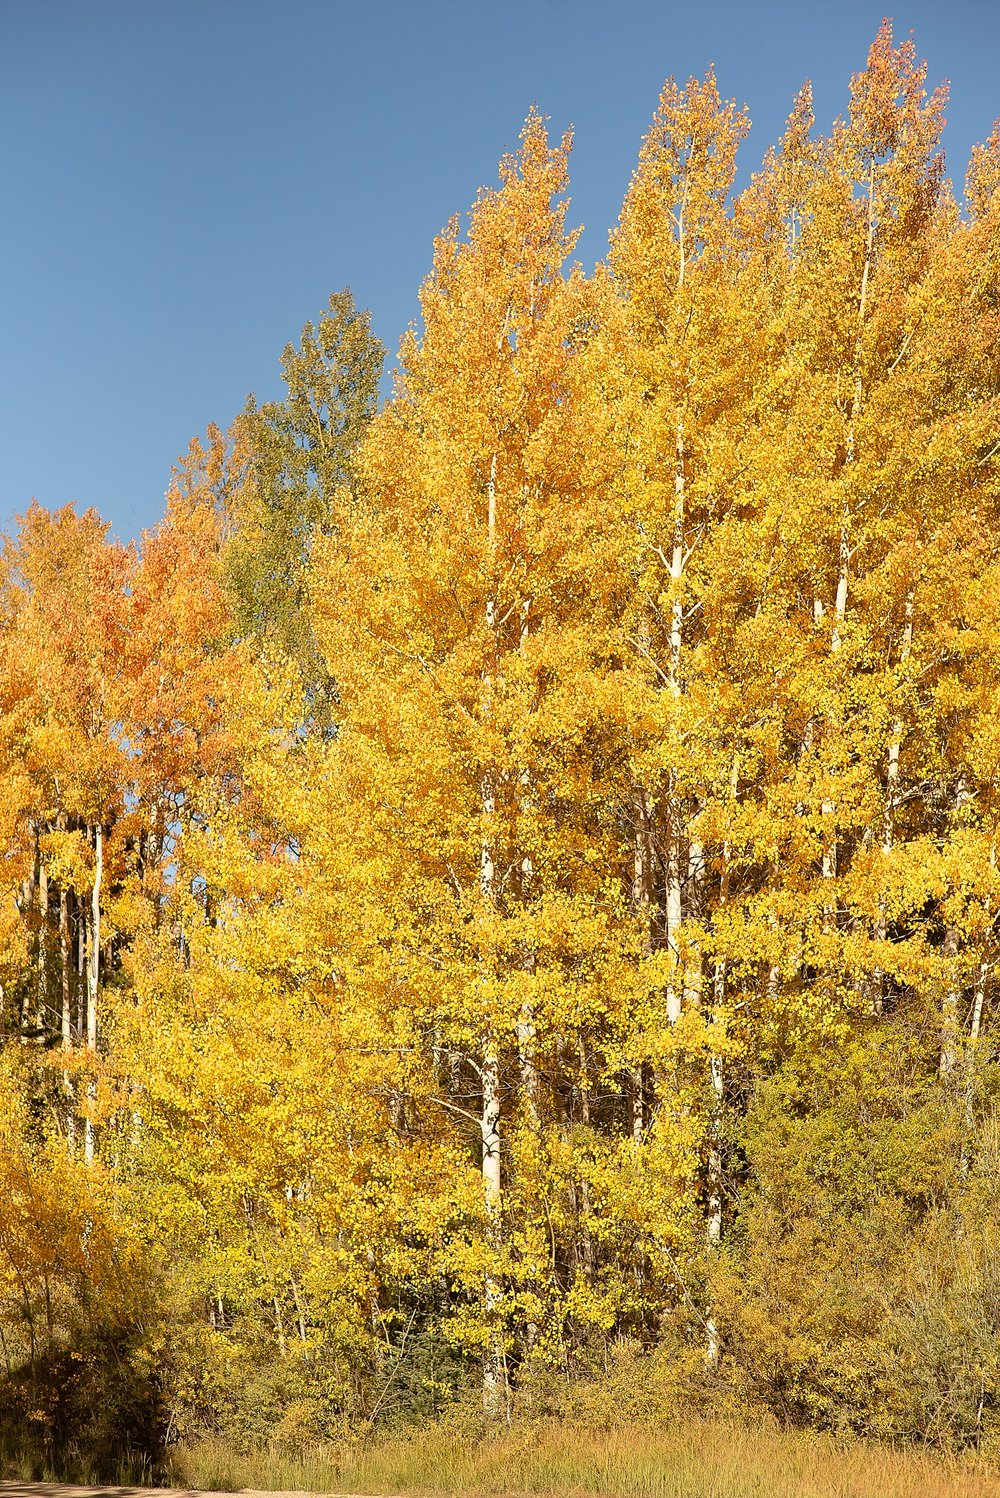 We just couldn't get over how stunning the Aspens were!